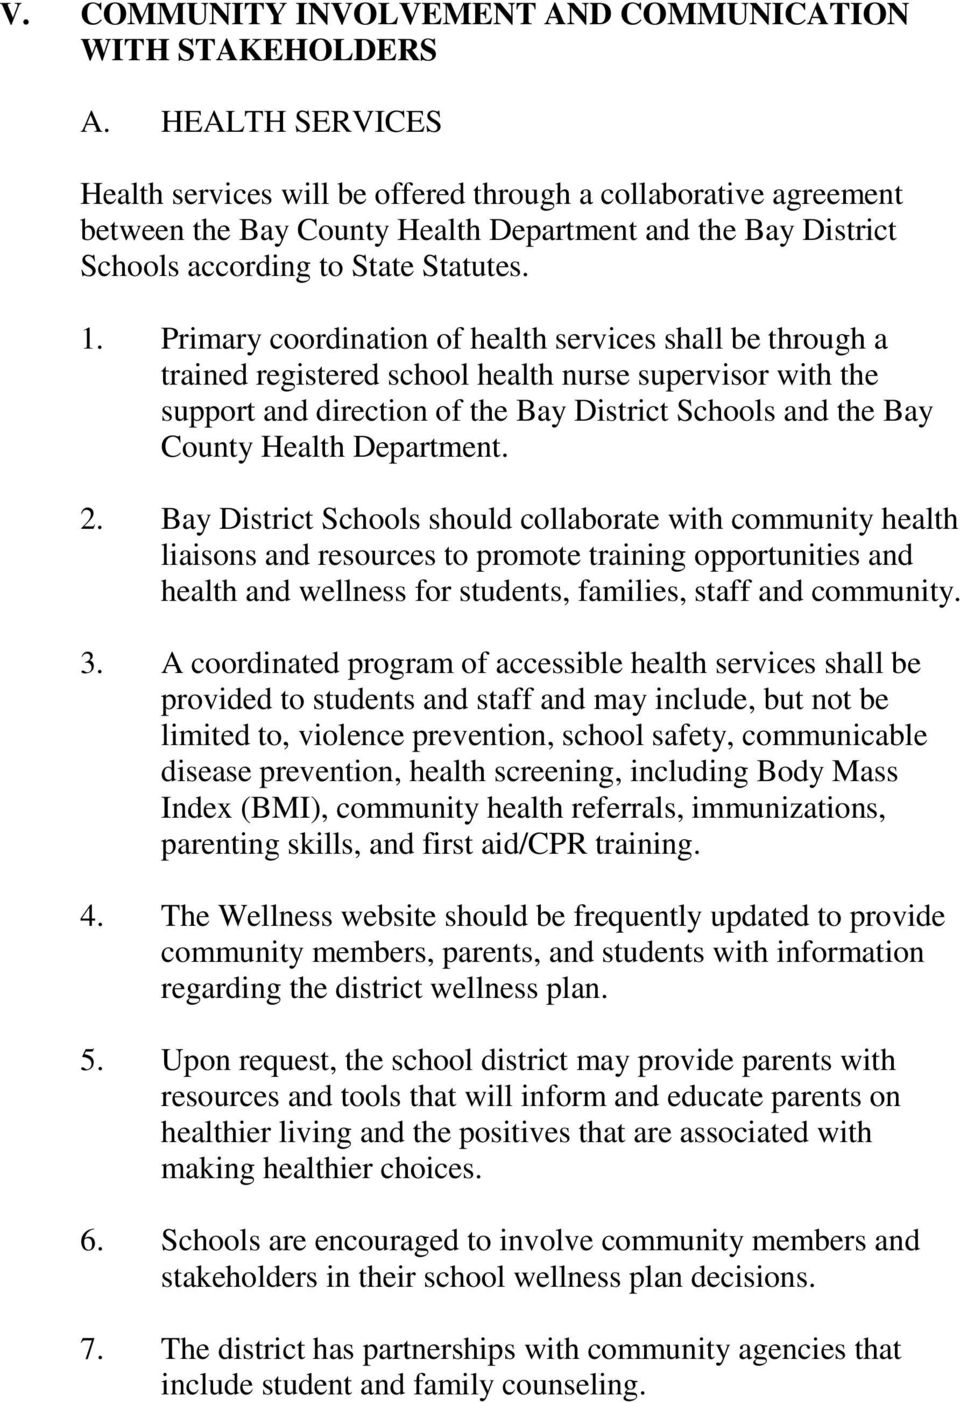 Primary coordination of health services shall be through a trained registered school health nurse supervisor with the support and direction of the Bay District Schools and the Bay County Health